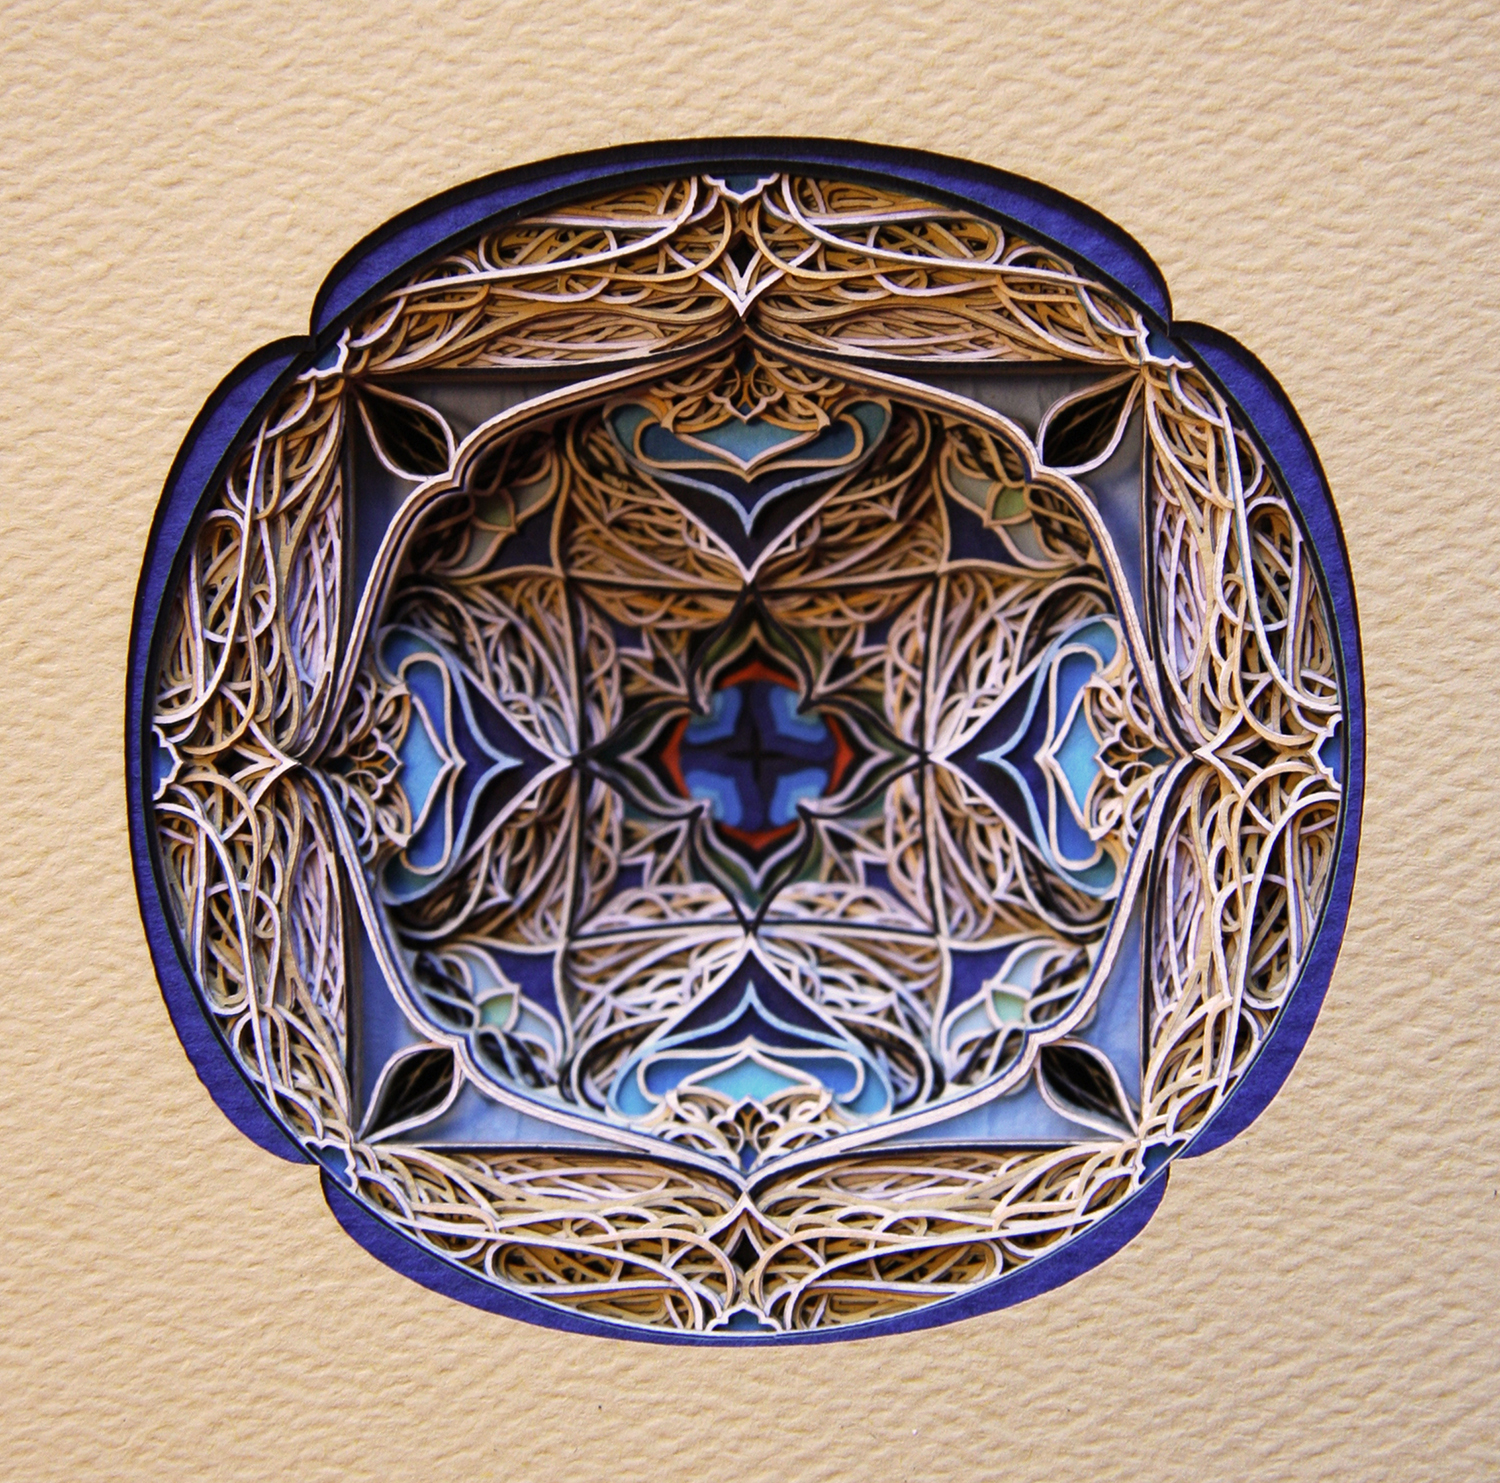 Ornate window-style ornamentation made of cut paper